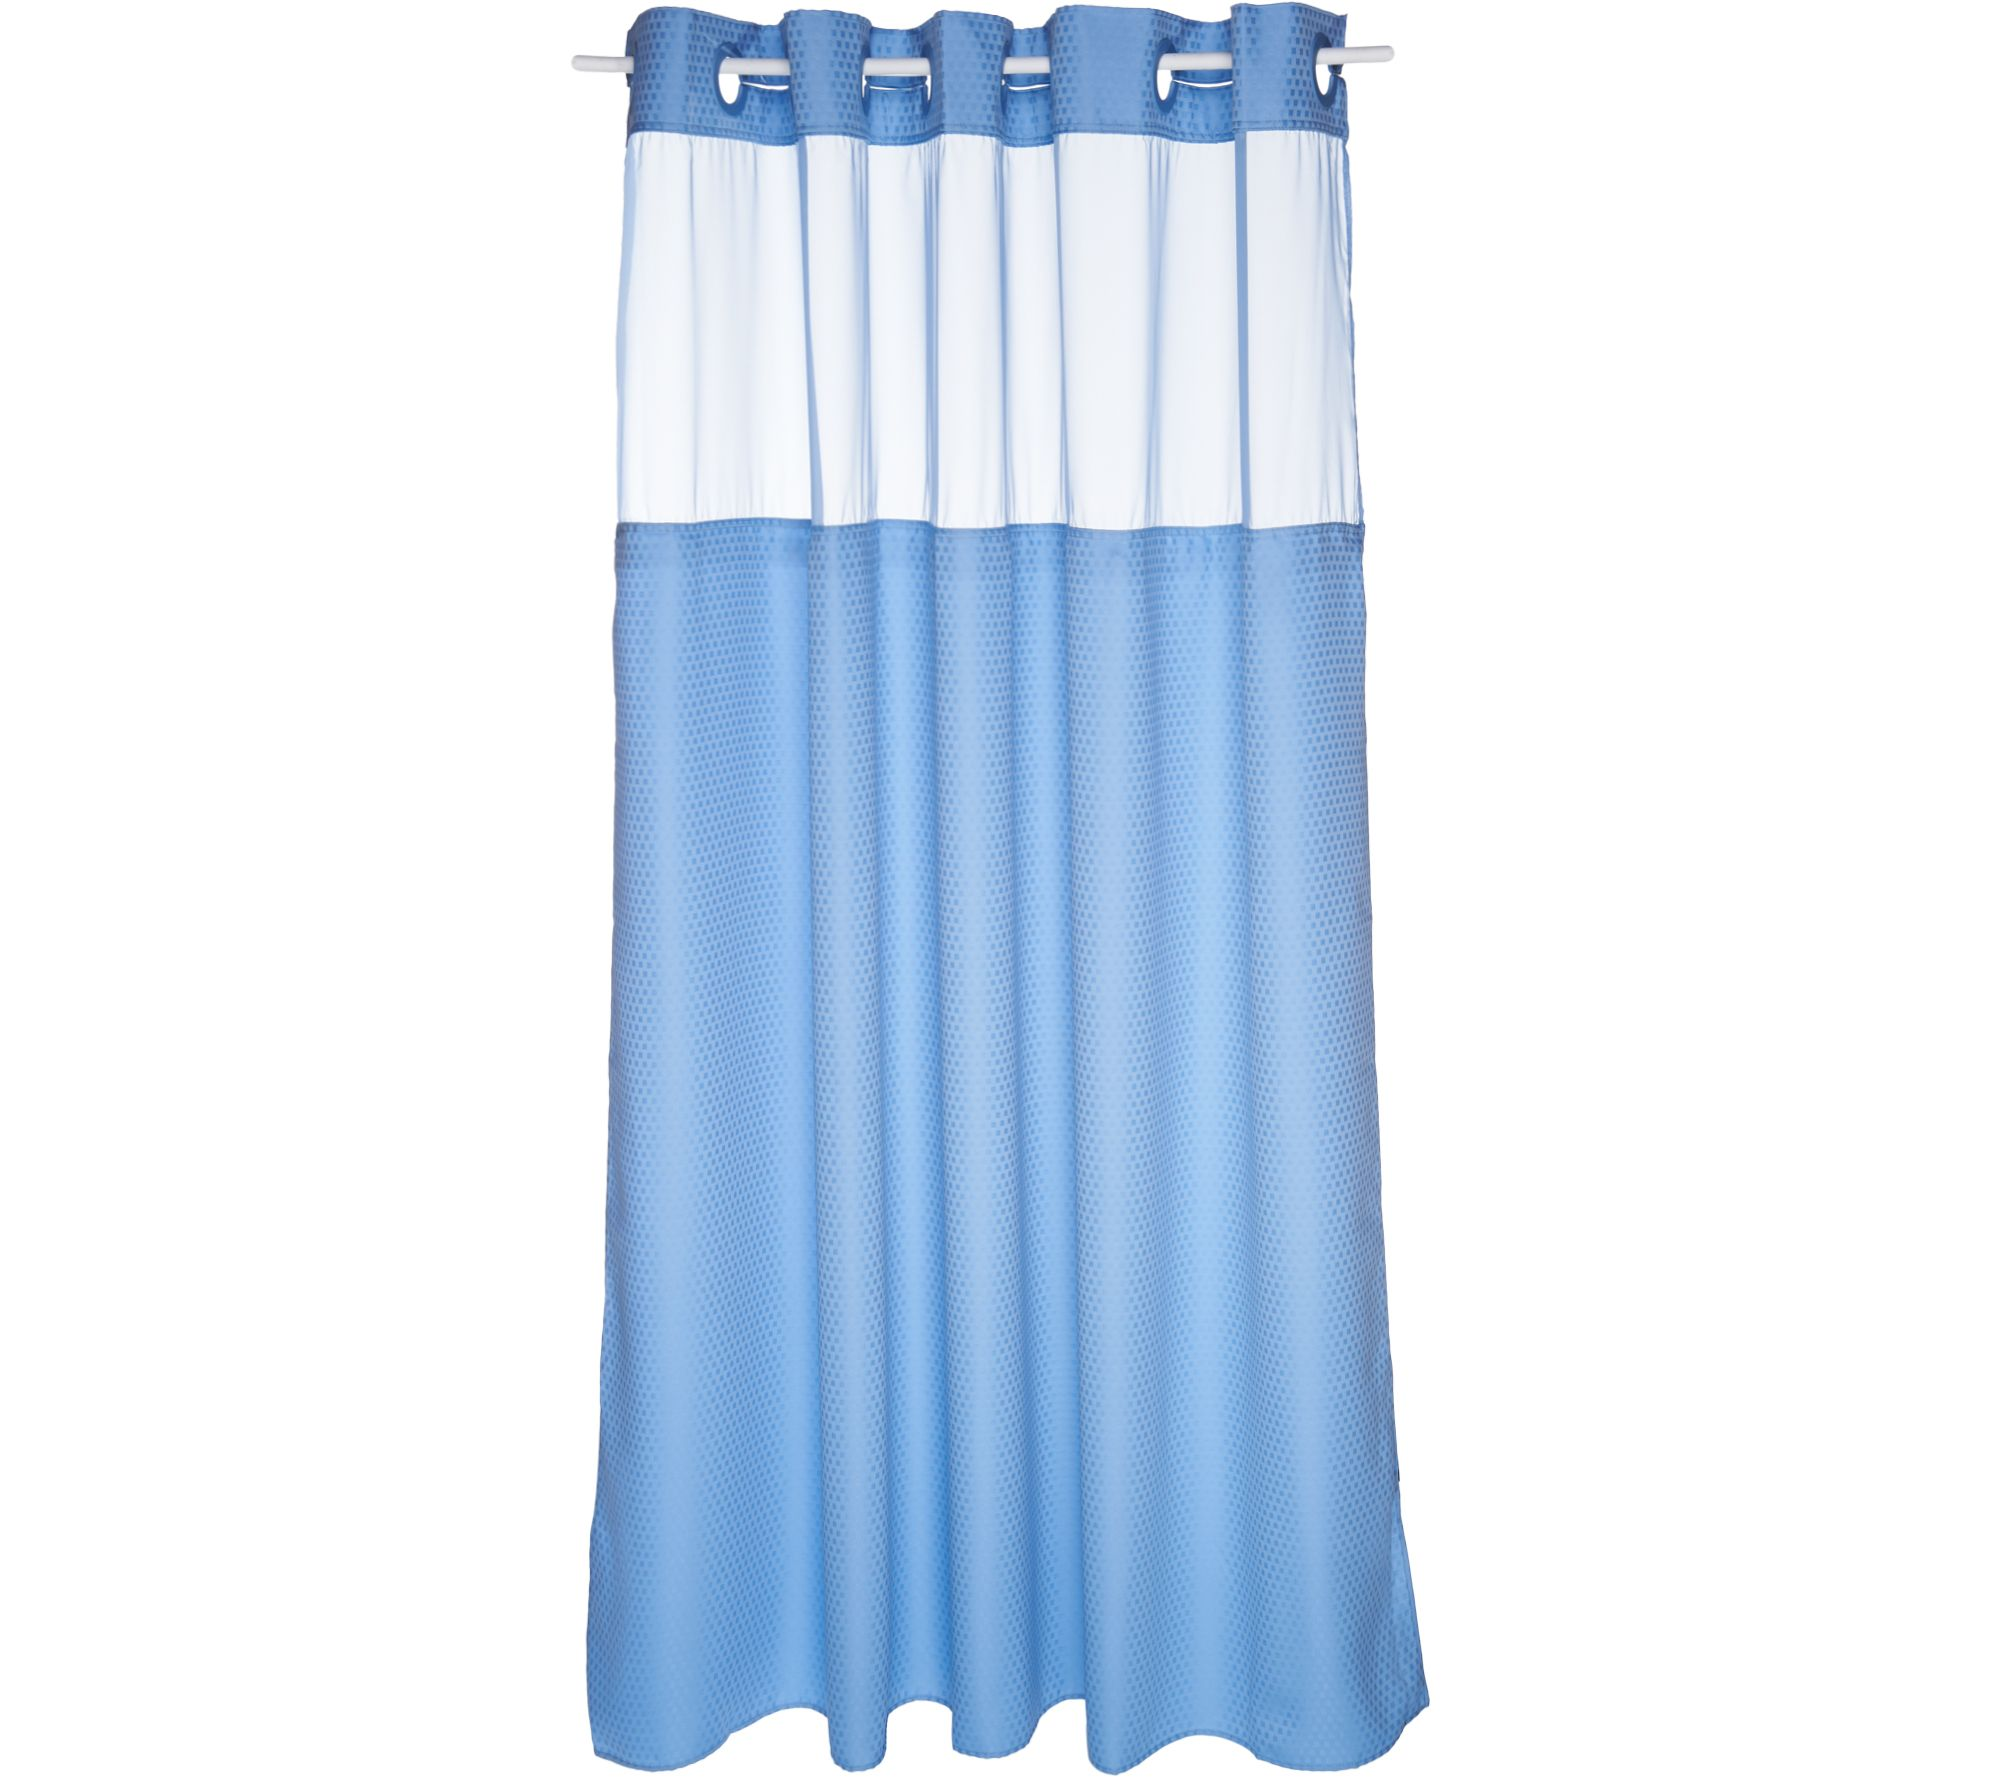 Hookless shower curtain blue - Hookless Mini Square Jacquard Shower Curtain W Fabric Liner Page 1 Qvc Com